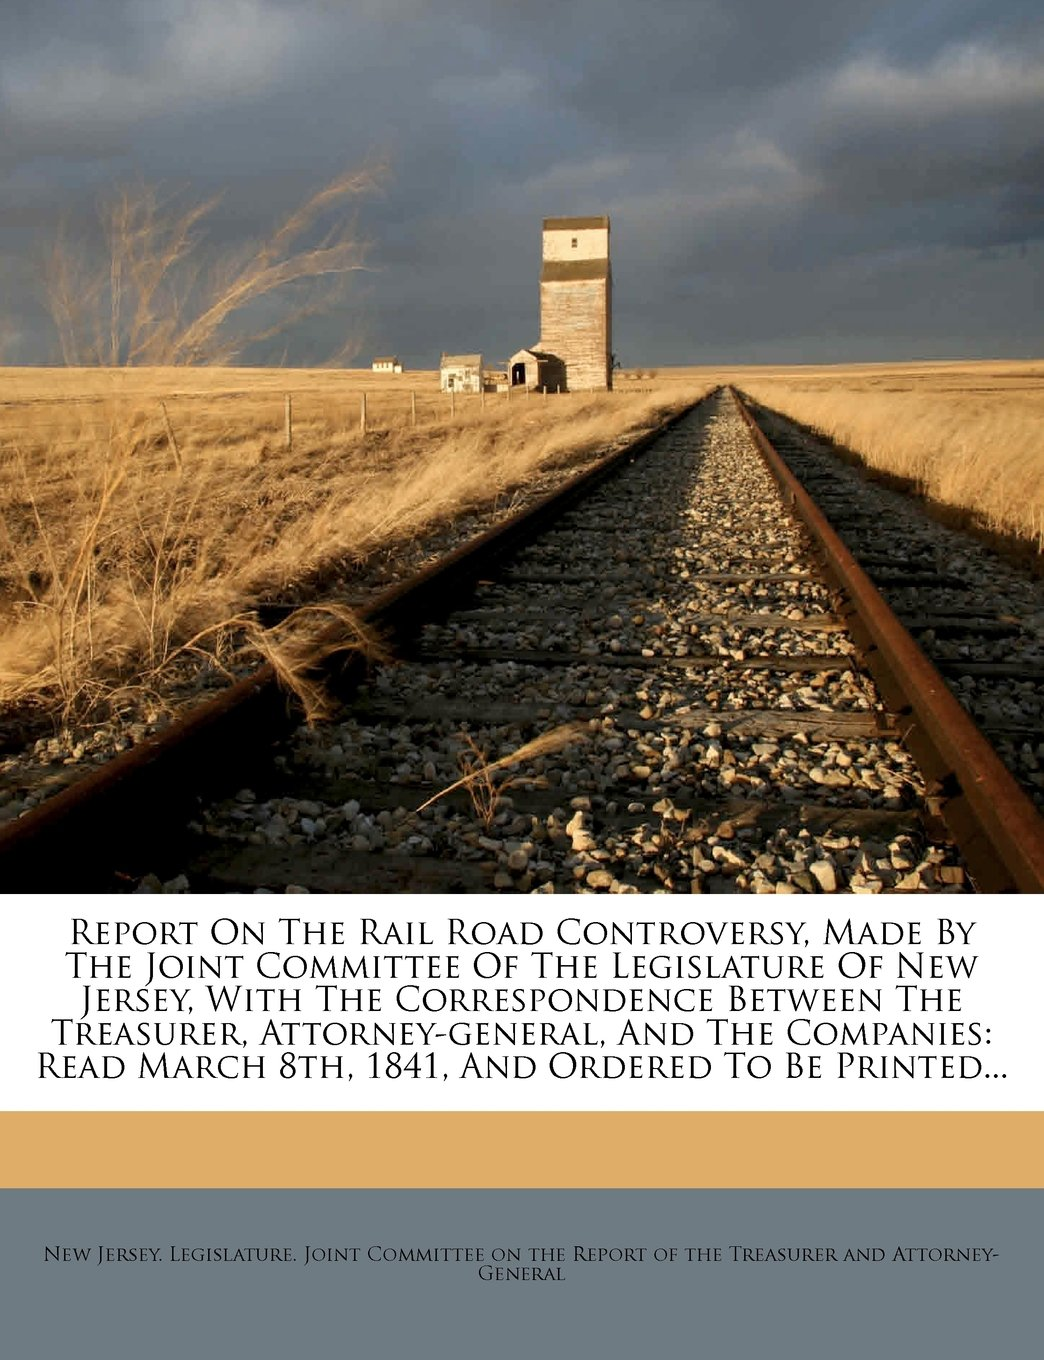 Report On The Rail Road Controversy, Made By The Joint Committee Of The Legislature Of New Jersey, With The Correspondence Between The Treasurer, ... March 8th, 1841, And Ordered To Be Printed... pdf